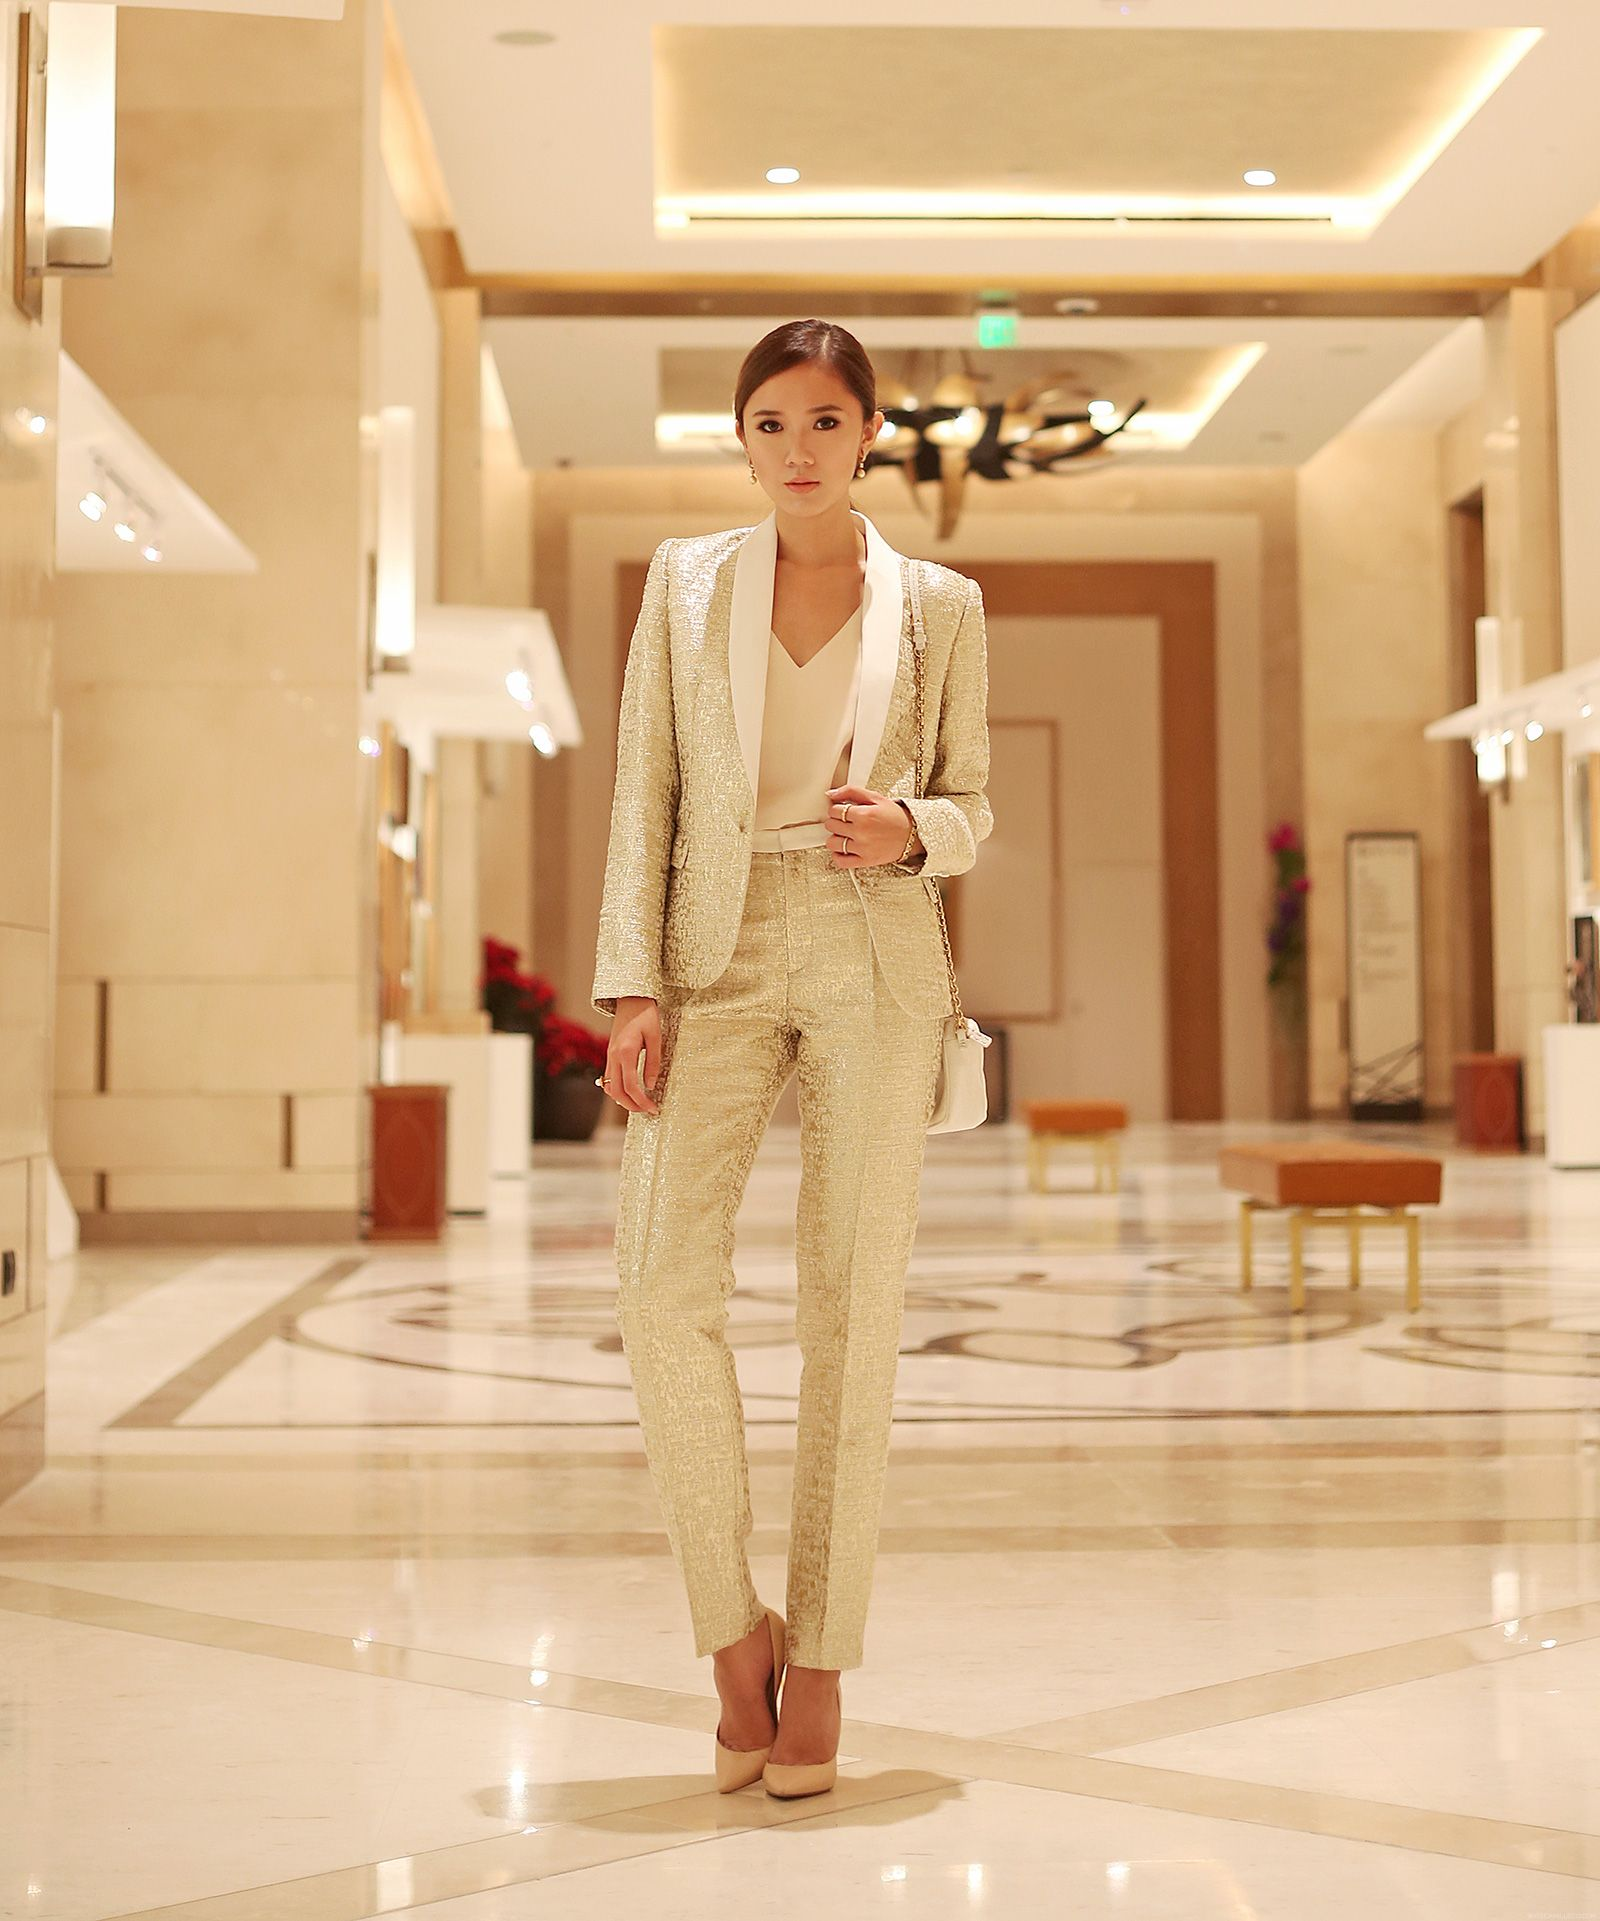 SuperTrash Olcay Gulsen Suit | www.itscamilleco.com